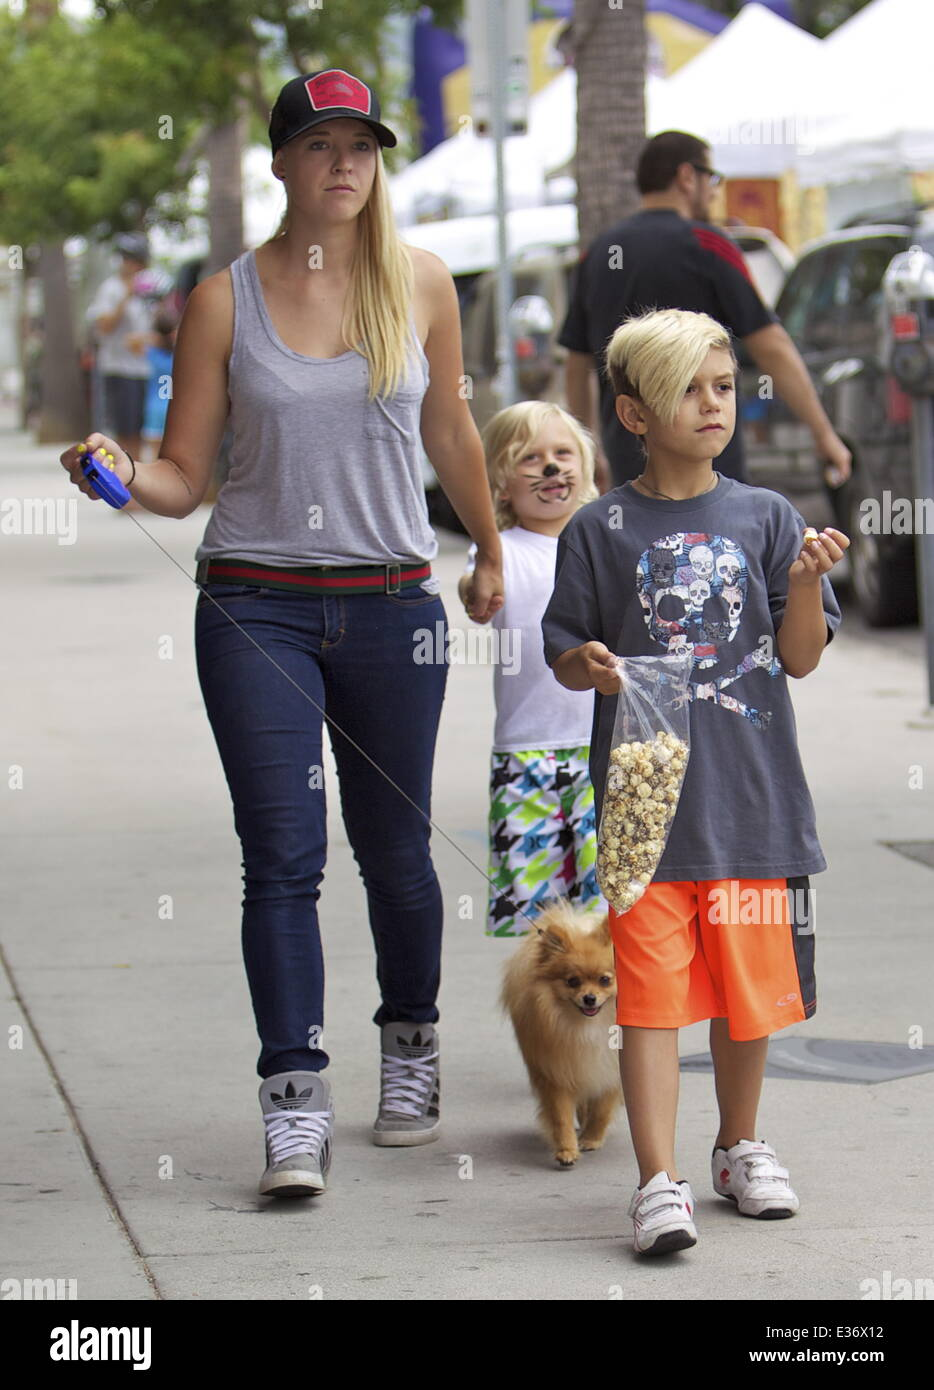 gwen stefanis sons kingston rossdale and zuma rossdale